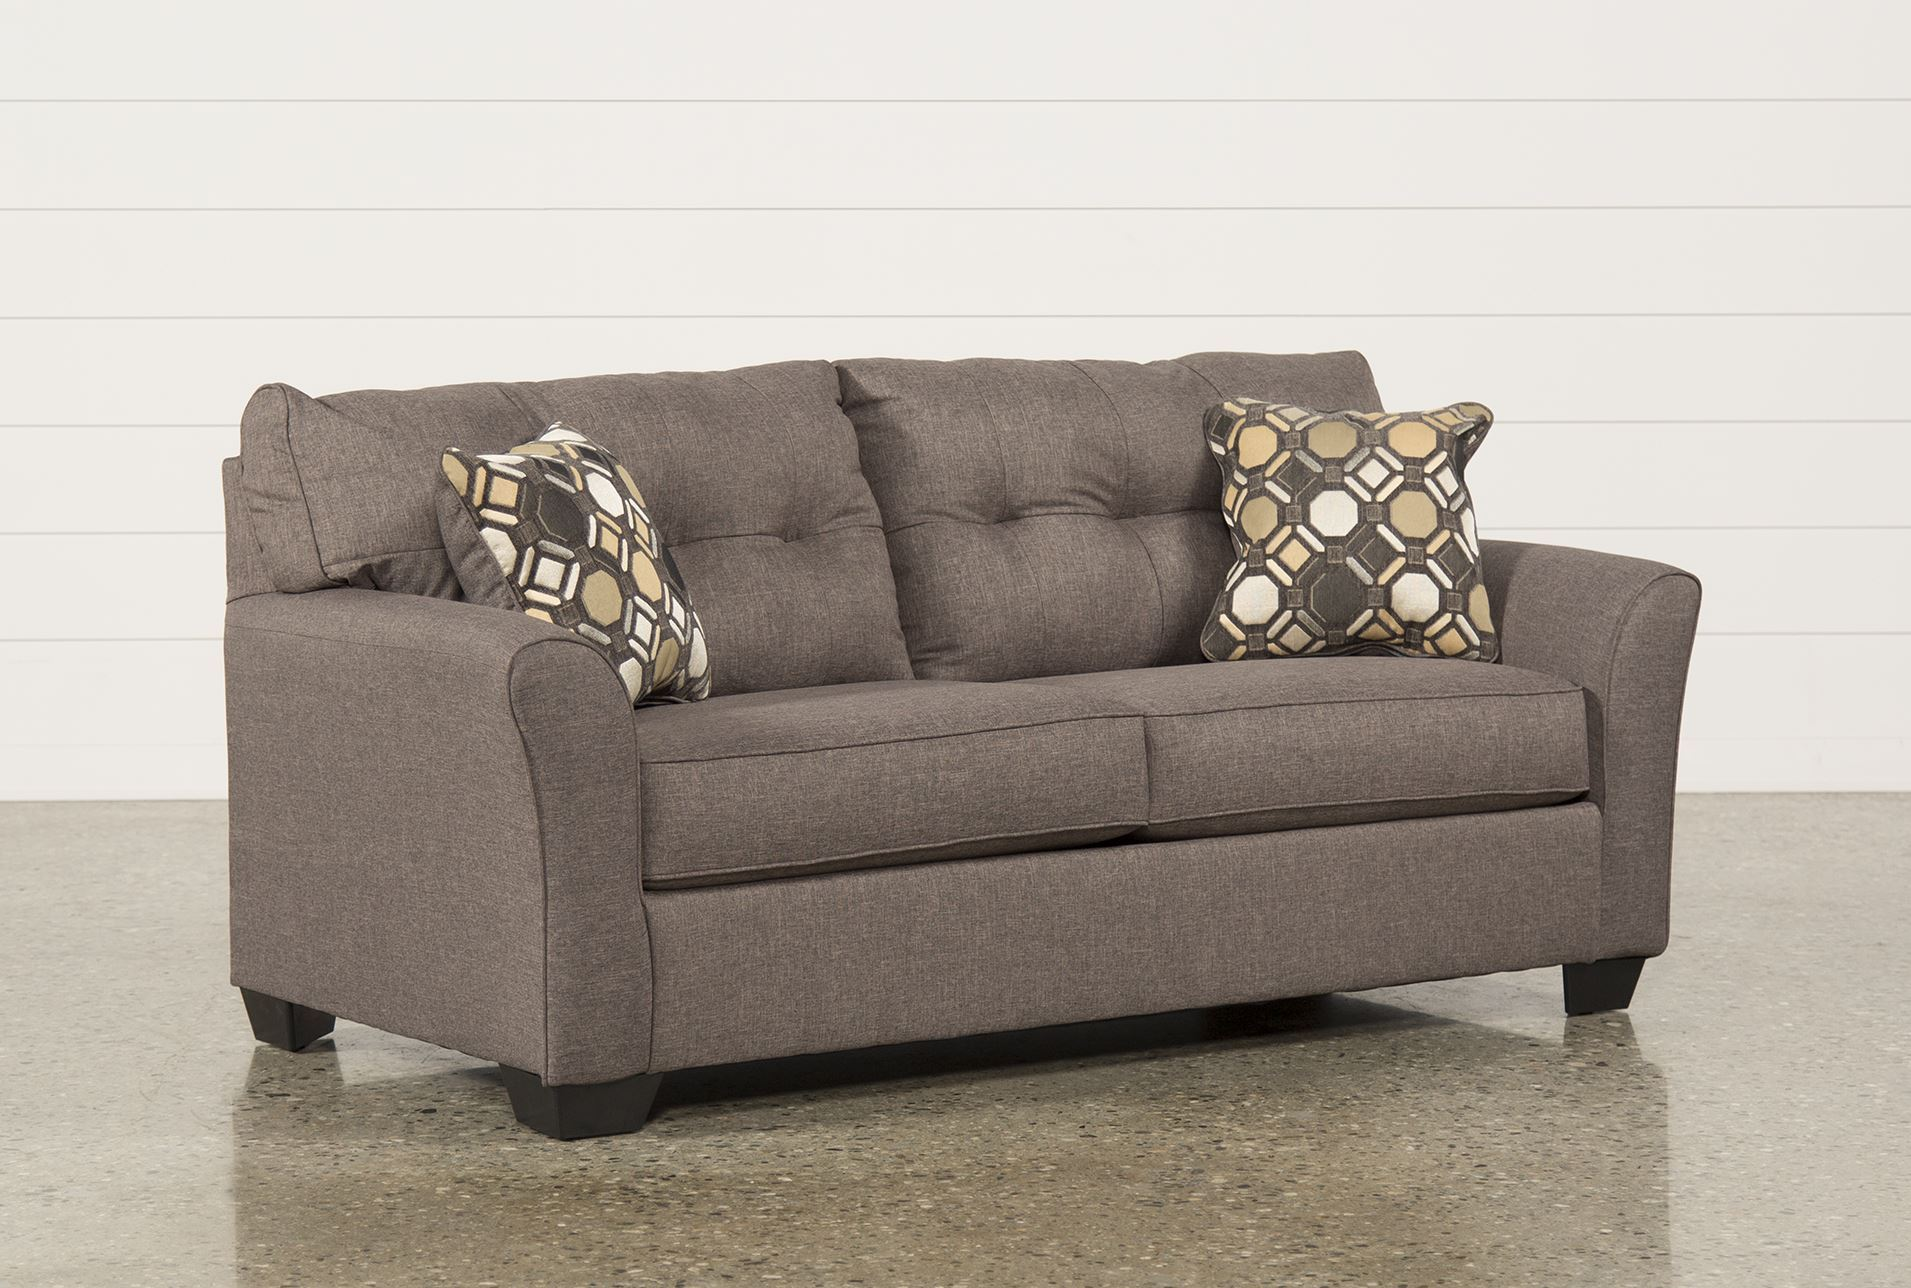 tibbee slate sofa marjen of chicago chicago discount furniture